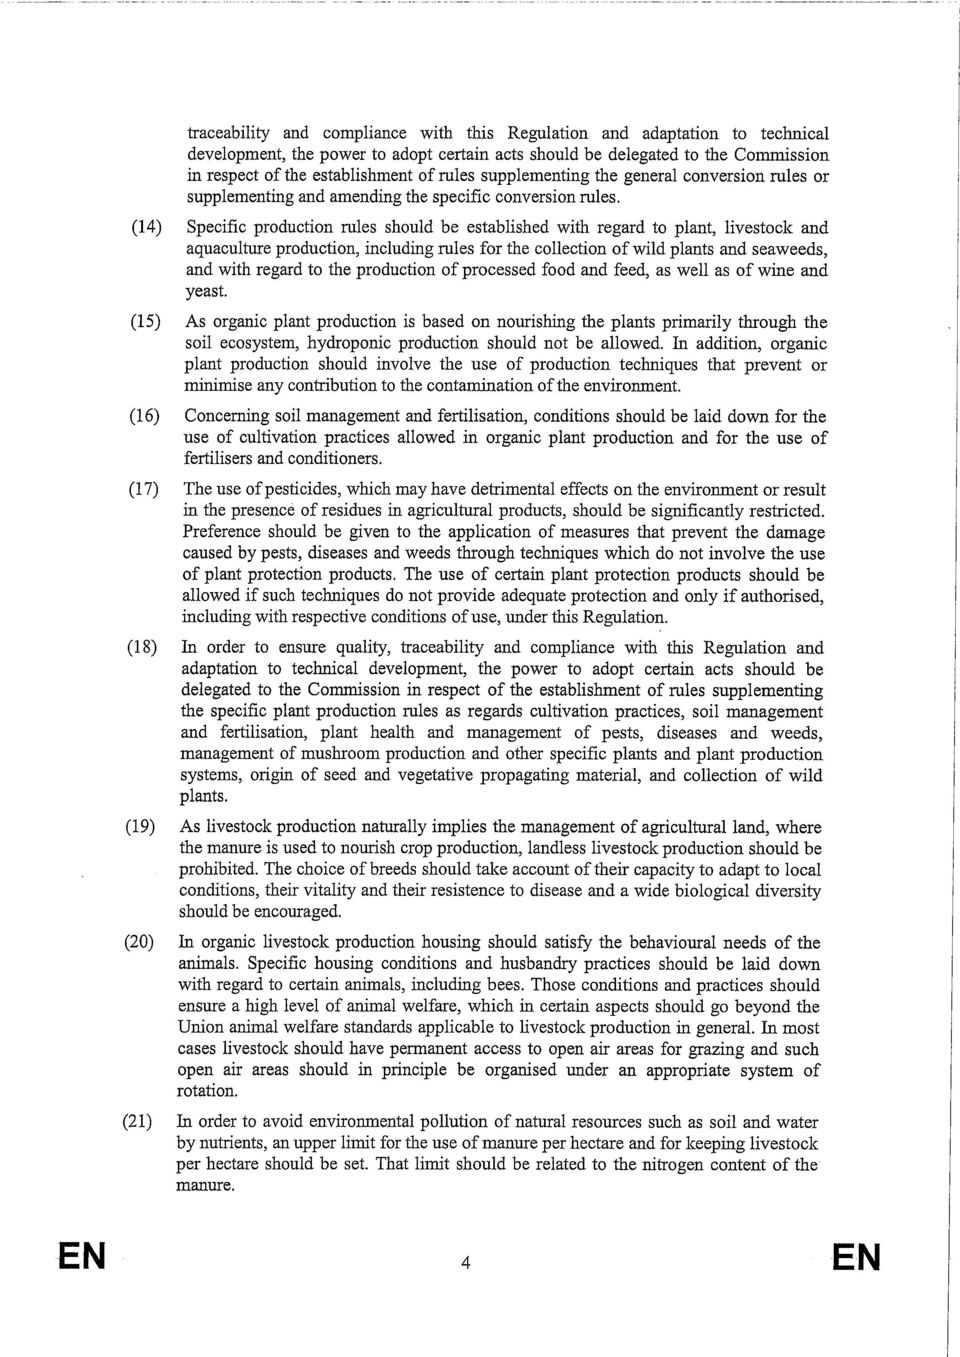 (14) Specific production rules should be established with regard to plant, livestock and aquaculture production, including rules for the collection of wild plants and seaweeds, and with regard to the